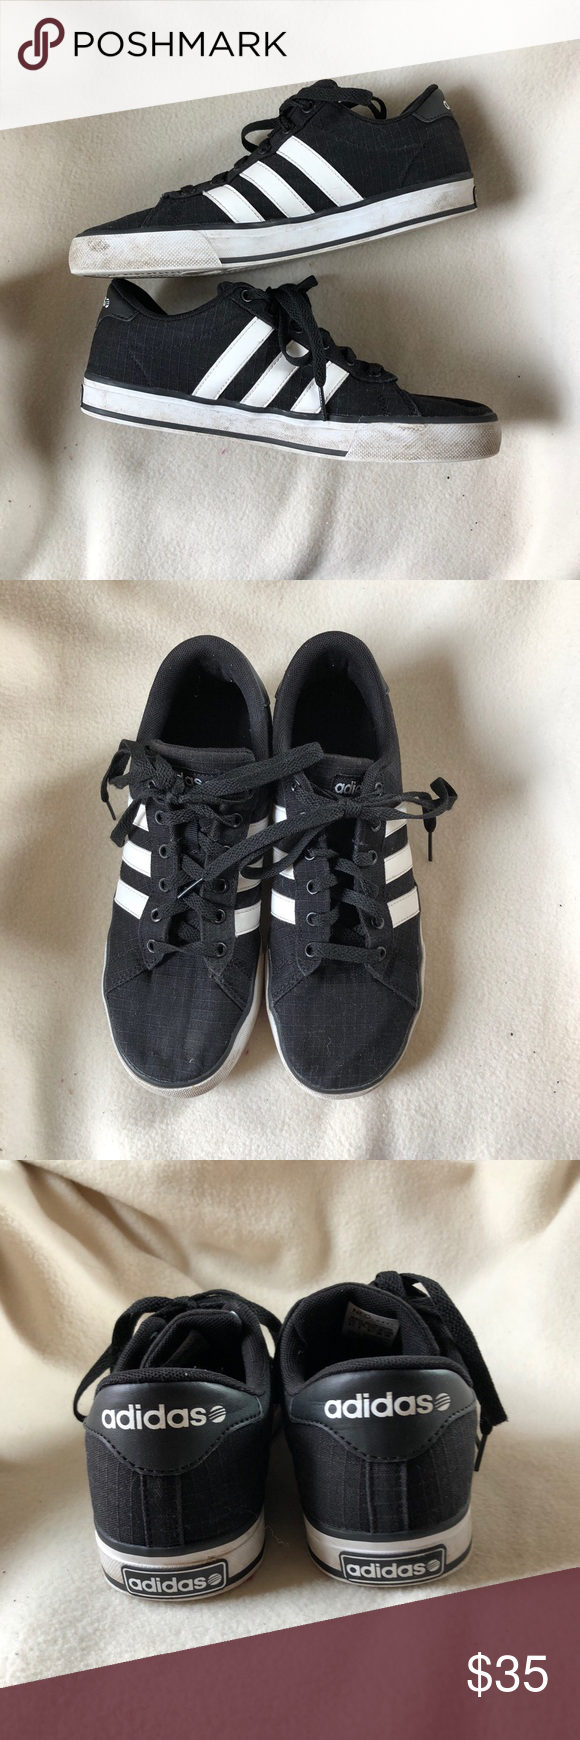 adidas neo label shoes black